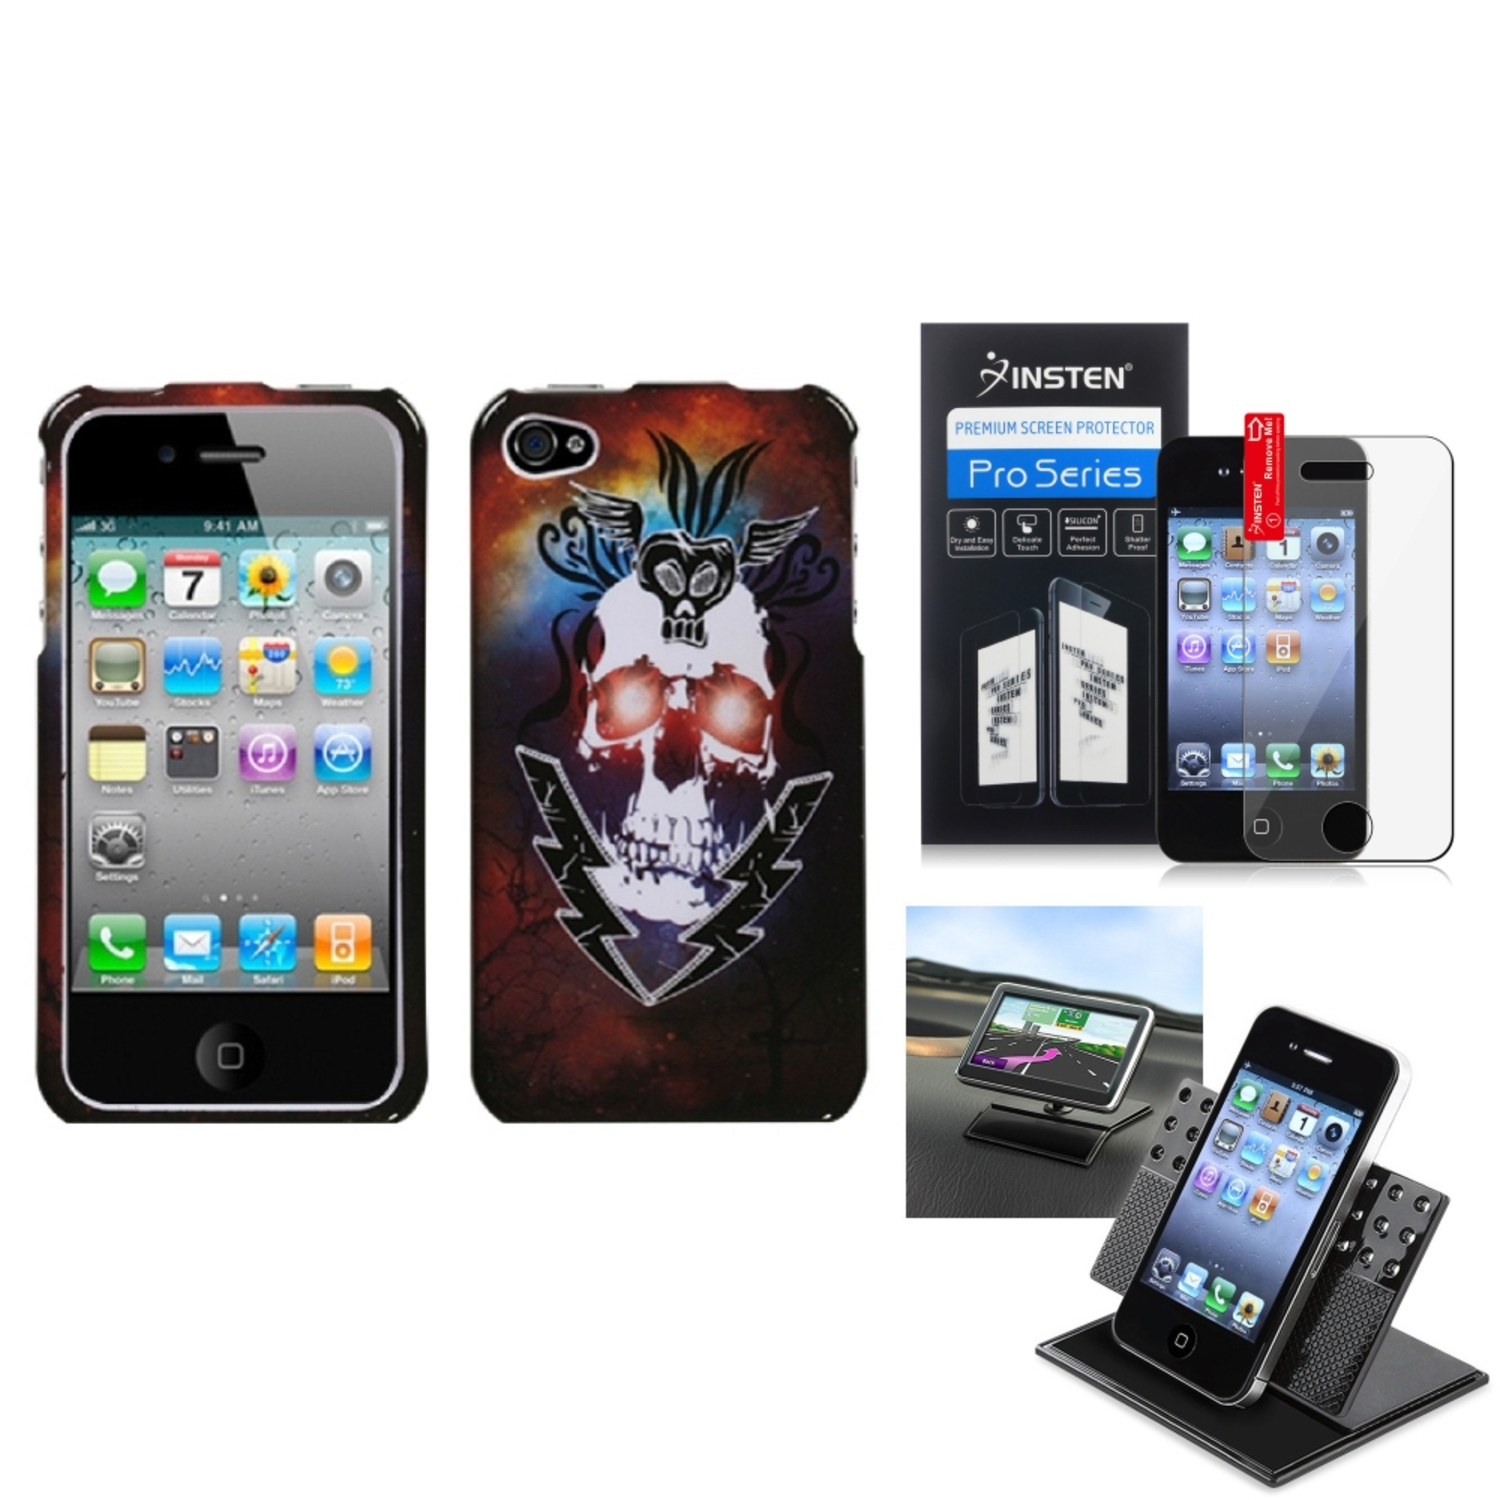 Insten Film Holder Lightning Skull Phone Case Cover For APPLE iPhone 4S/4